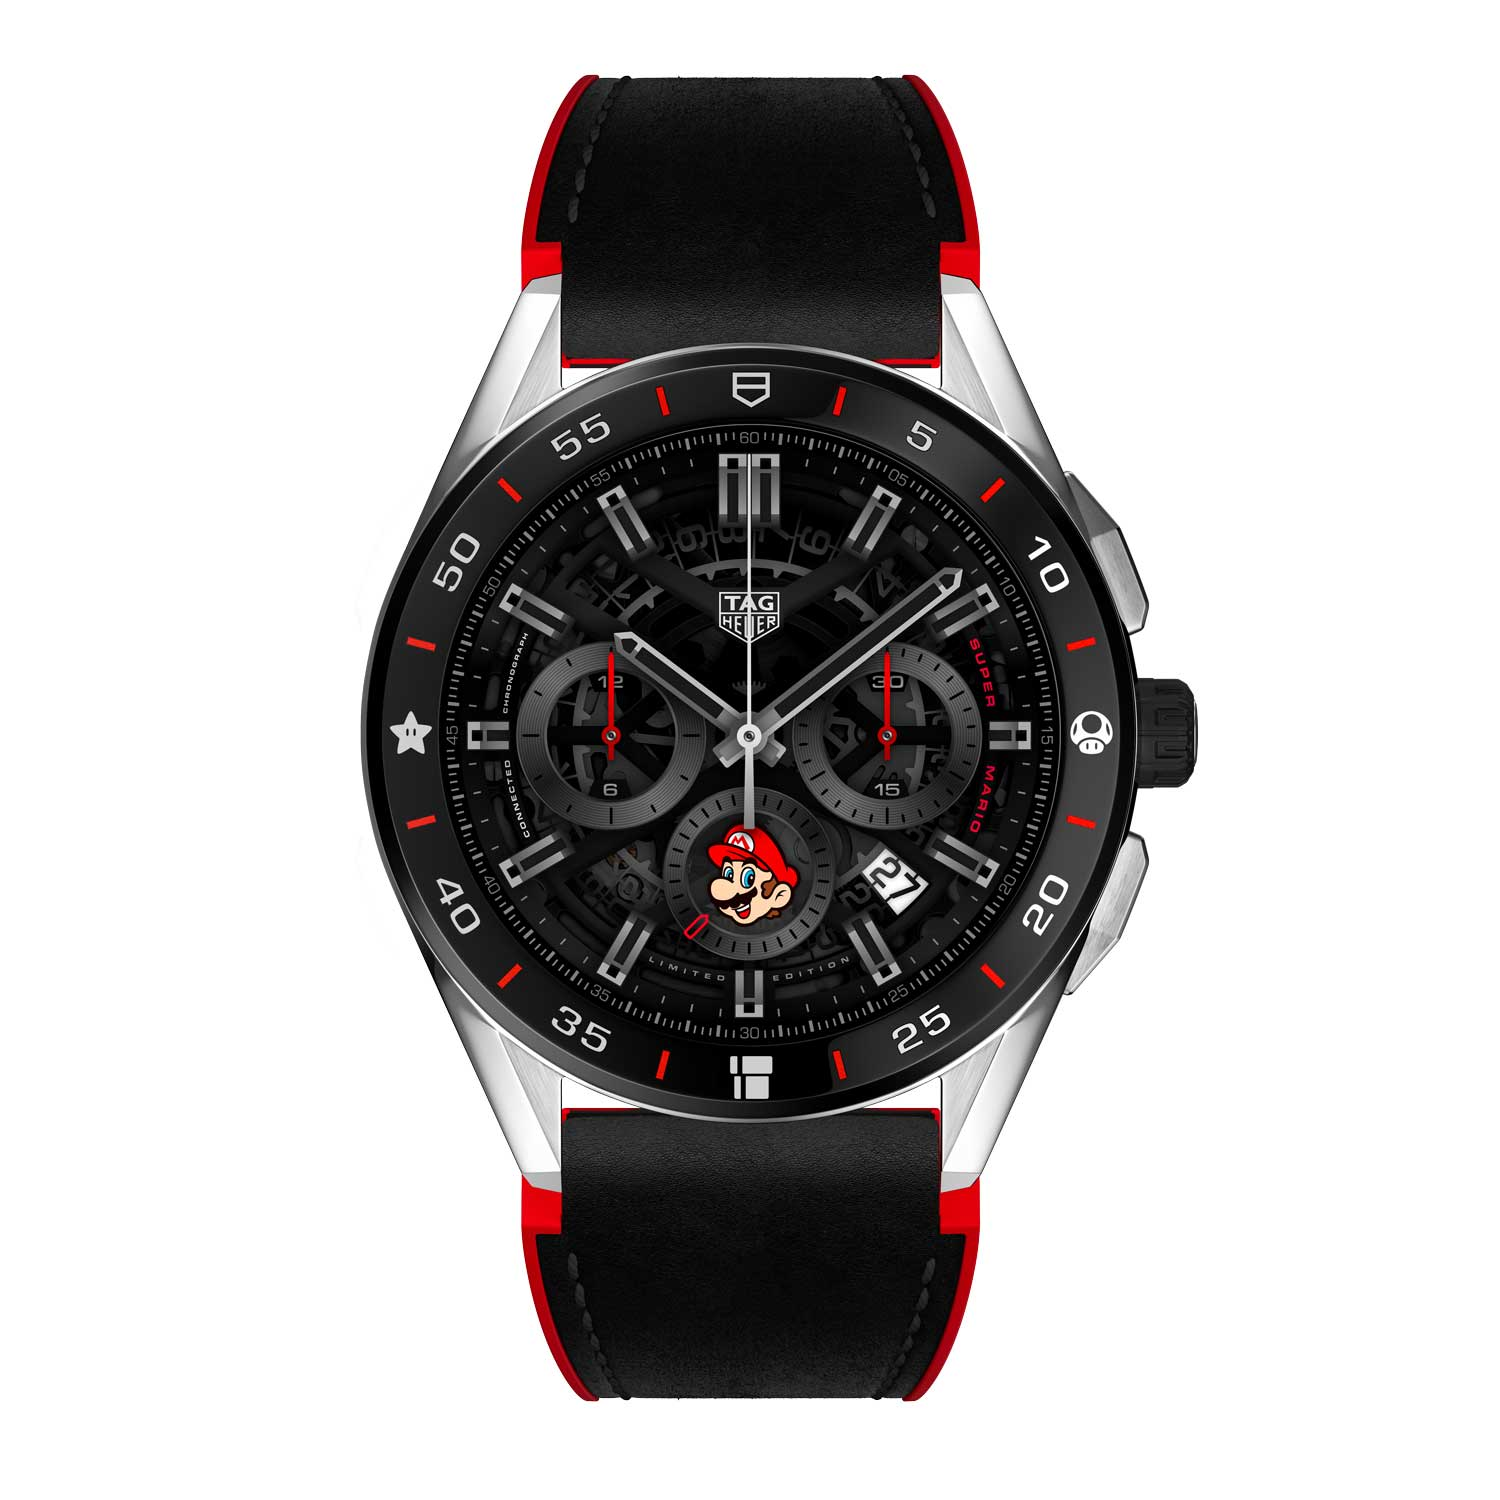 Two versions of the Heuer 02 watch face were created exclusively for this edition - a fun rendition using Super Mario's iconic red and blue colours, and a more classic one with subtle touches of Super Mario's red cap.